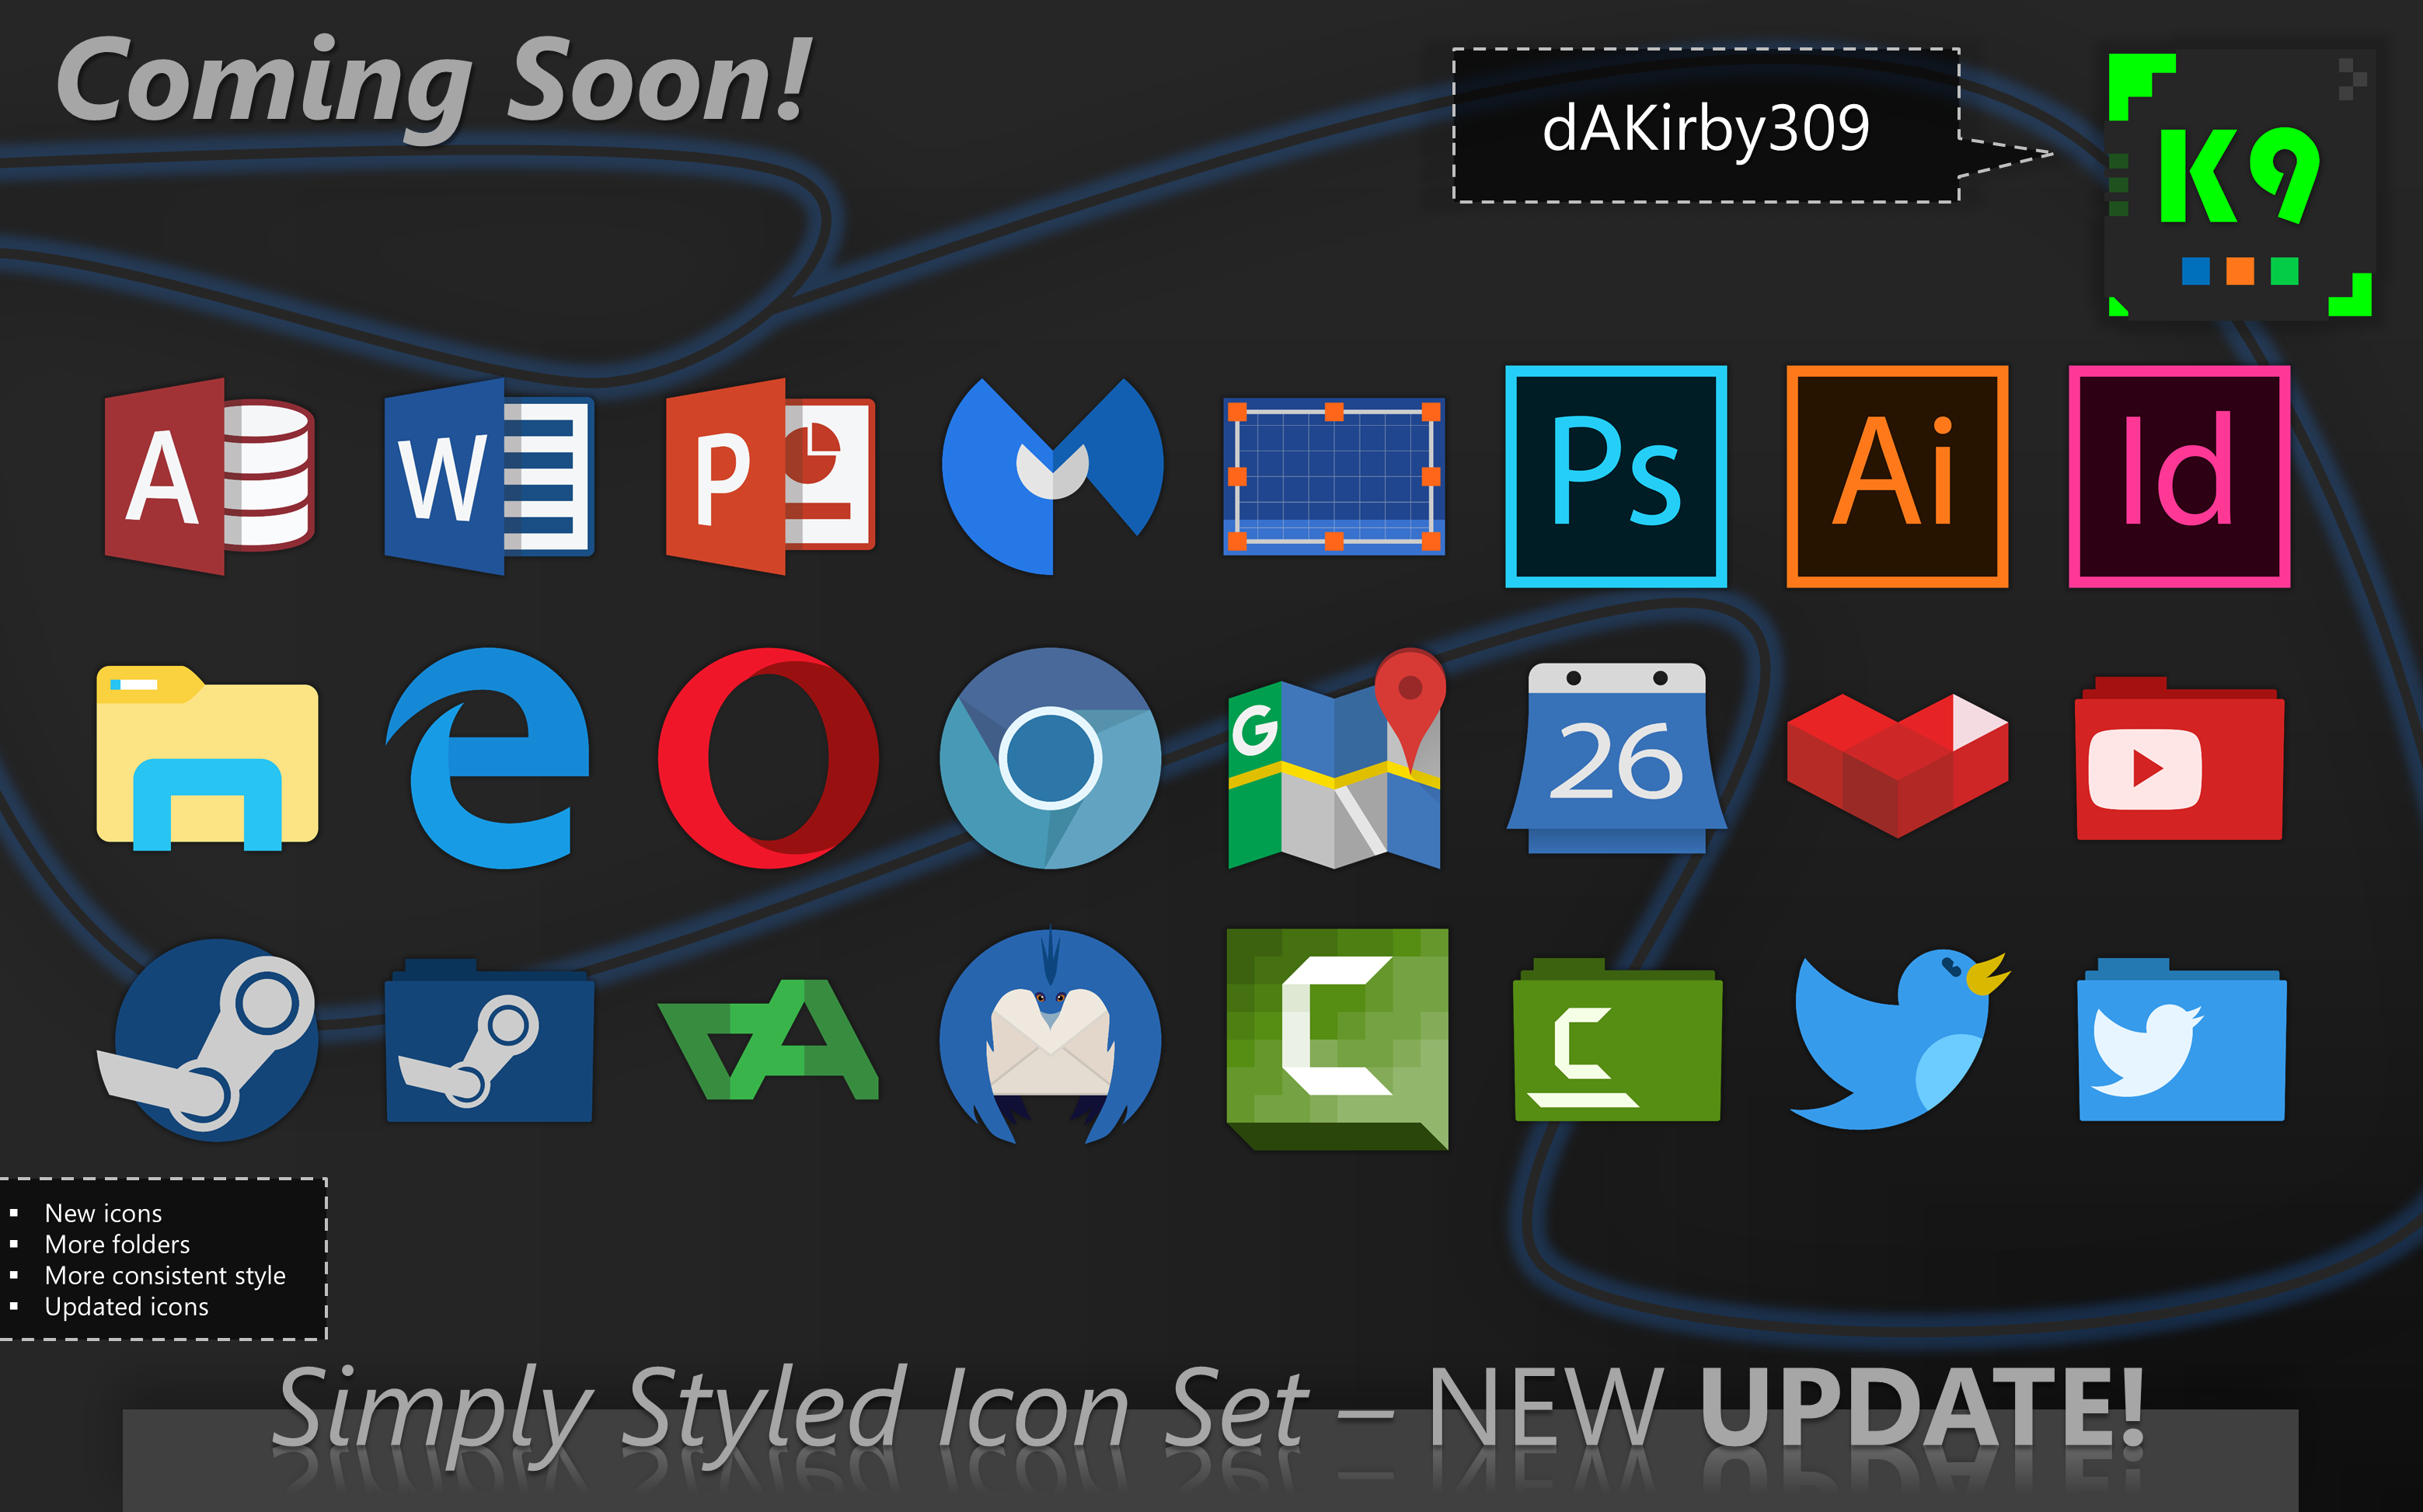 [COMPLETE] Simply Styled Icon Set UPDATE PREVIEW